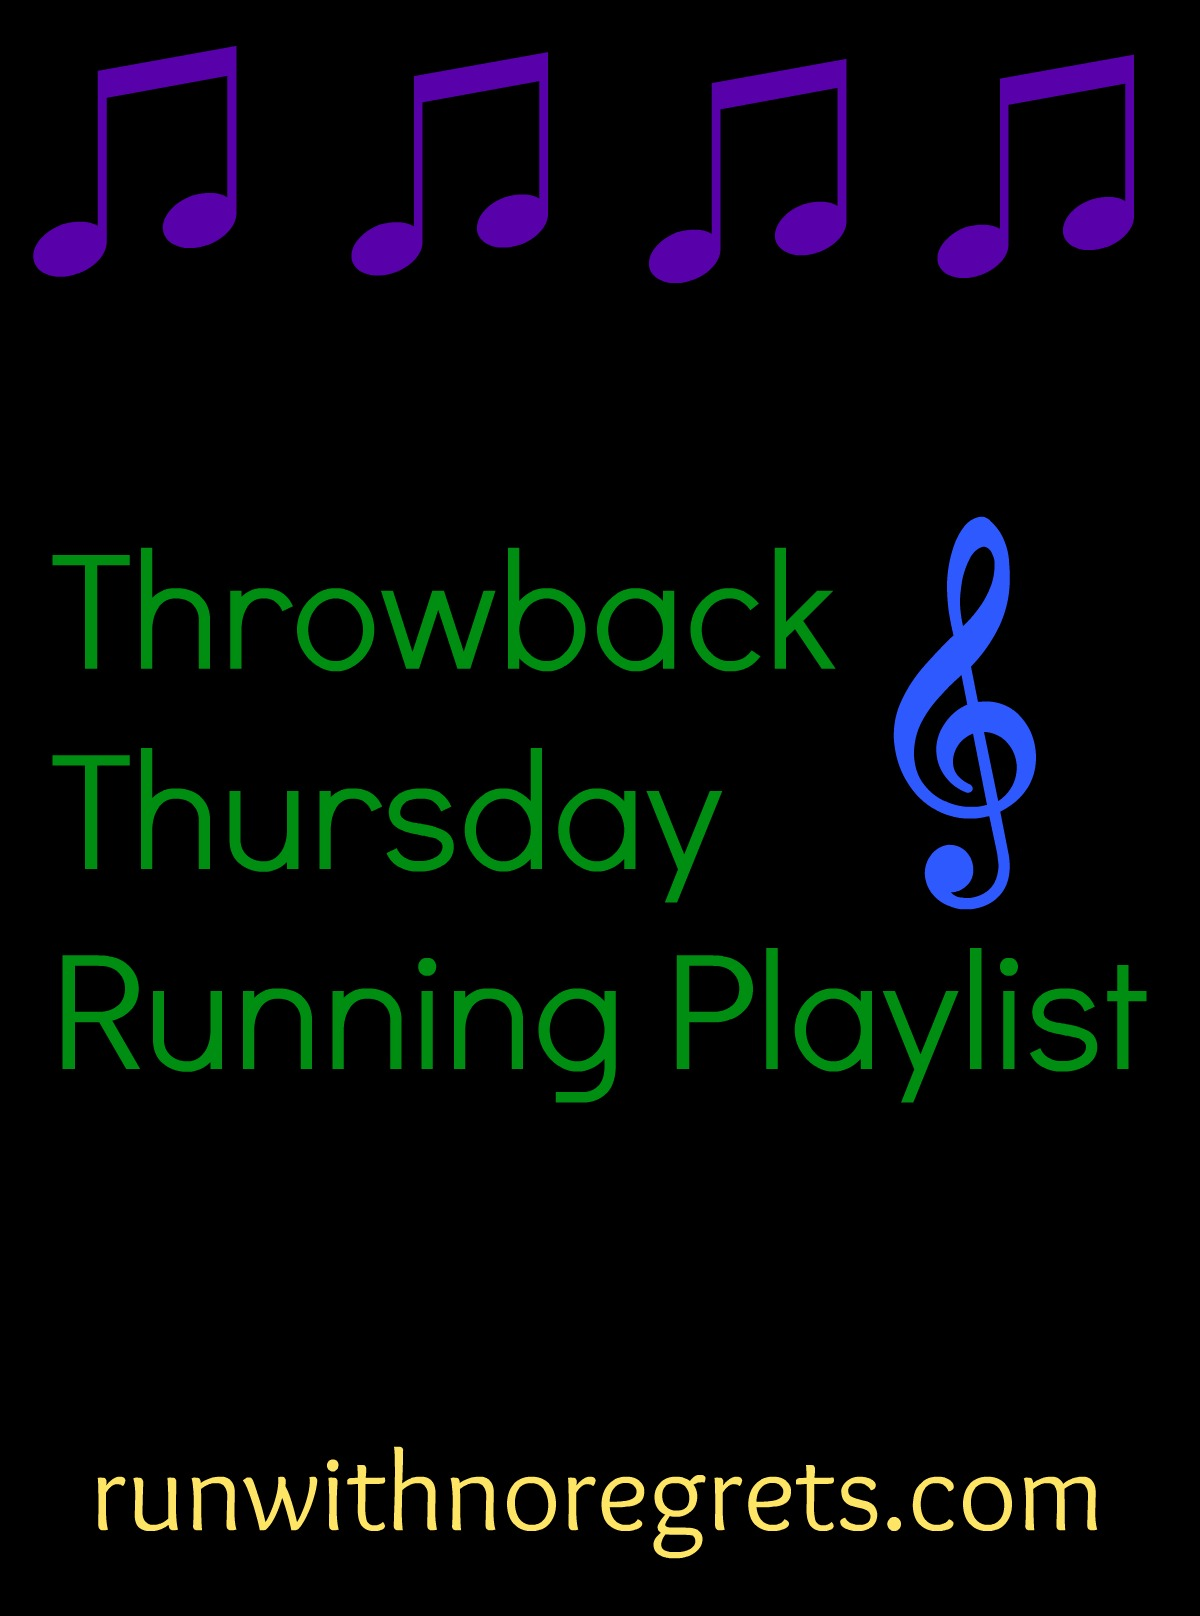 """Every month I share a """"throwback"""" music playlist perfect for heading out for a run! Check it out and more running resources at runwithnoregrets.com!"""